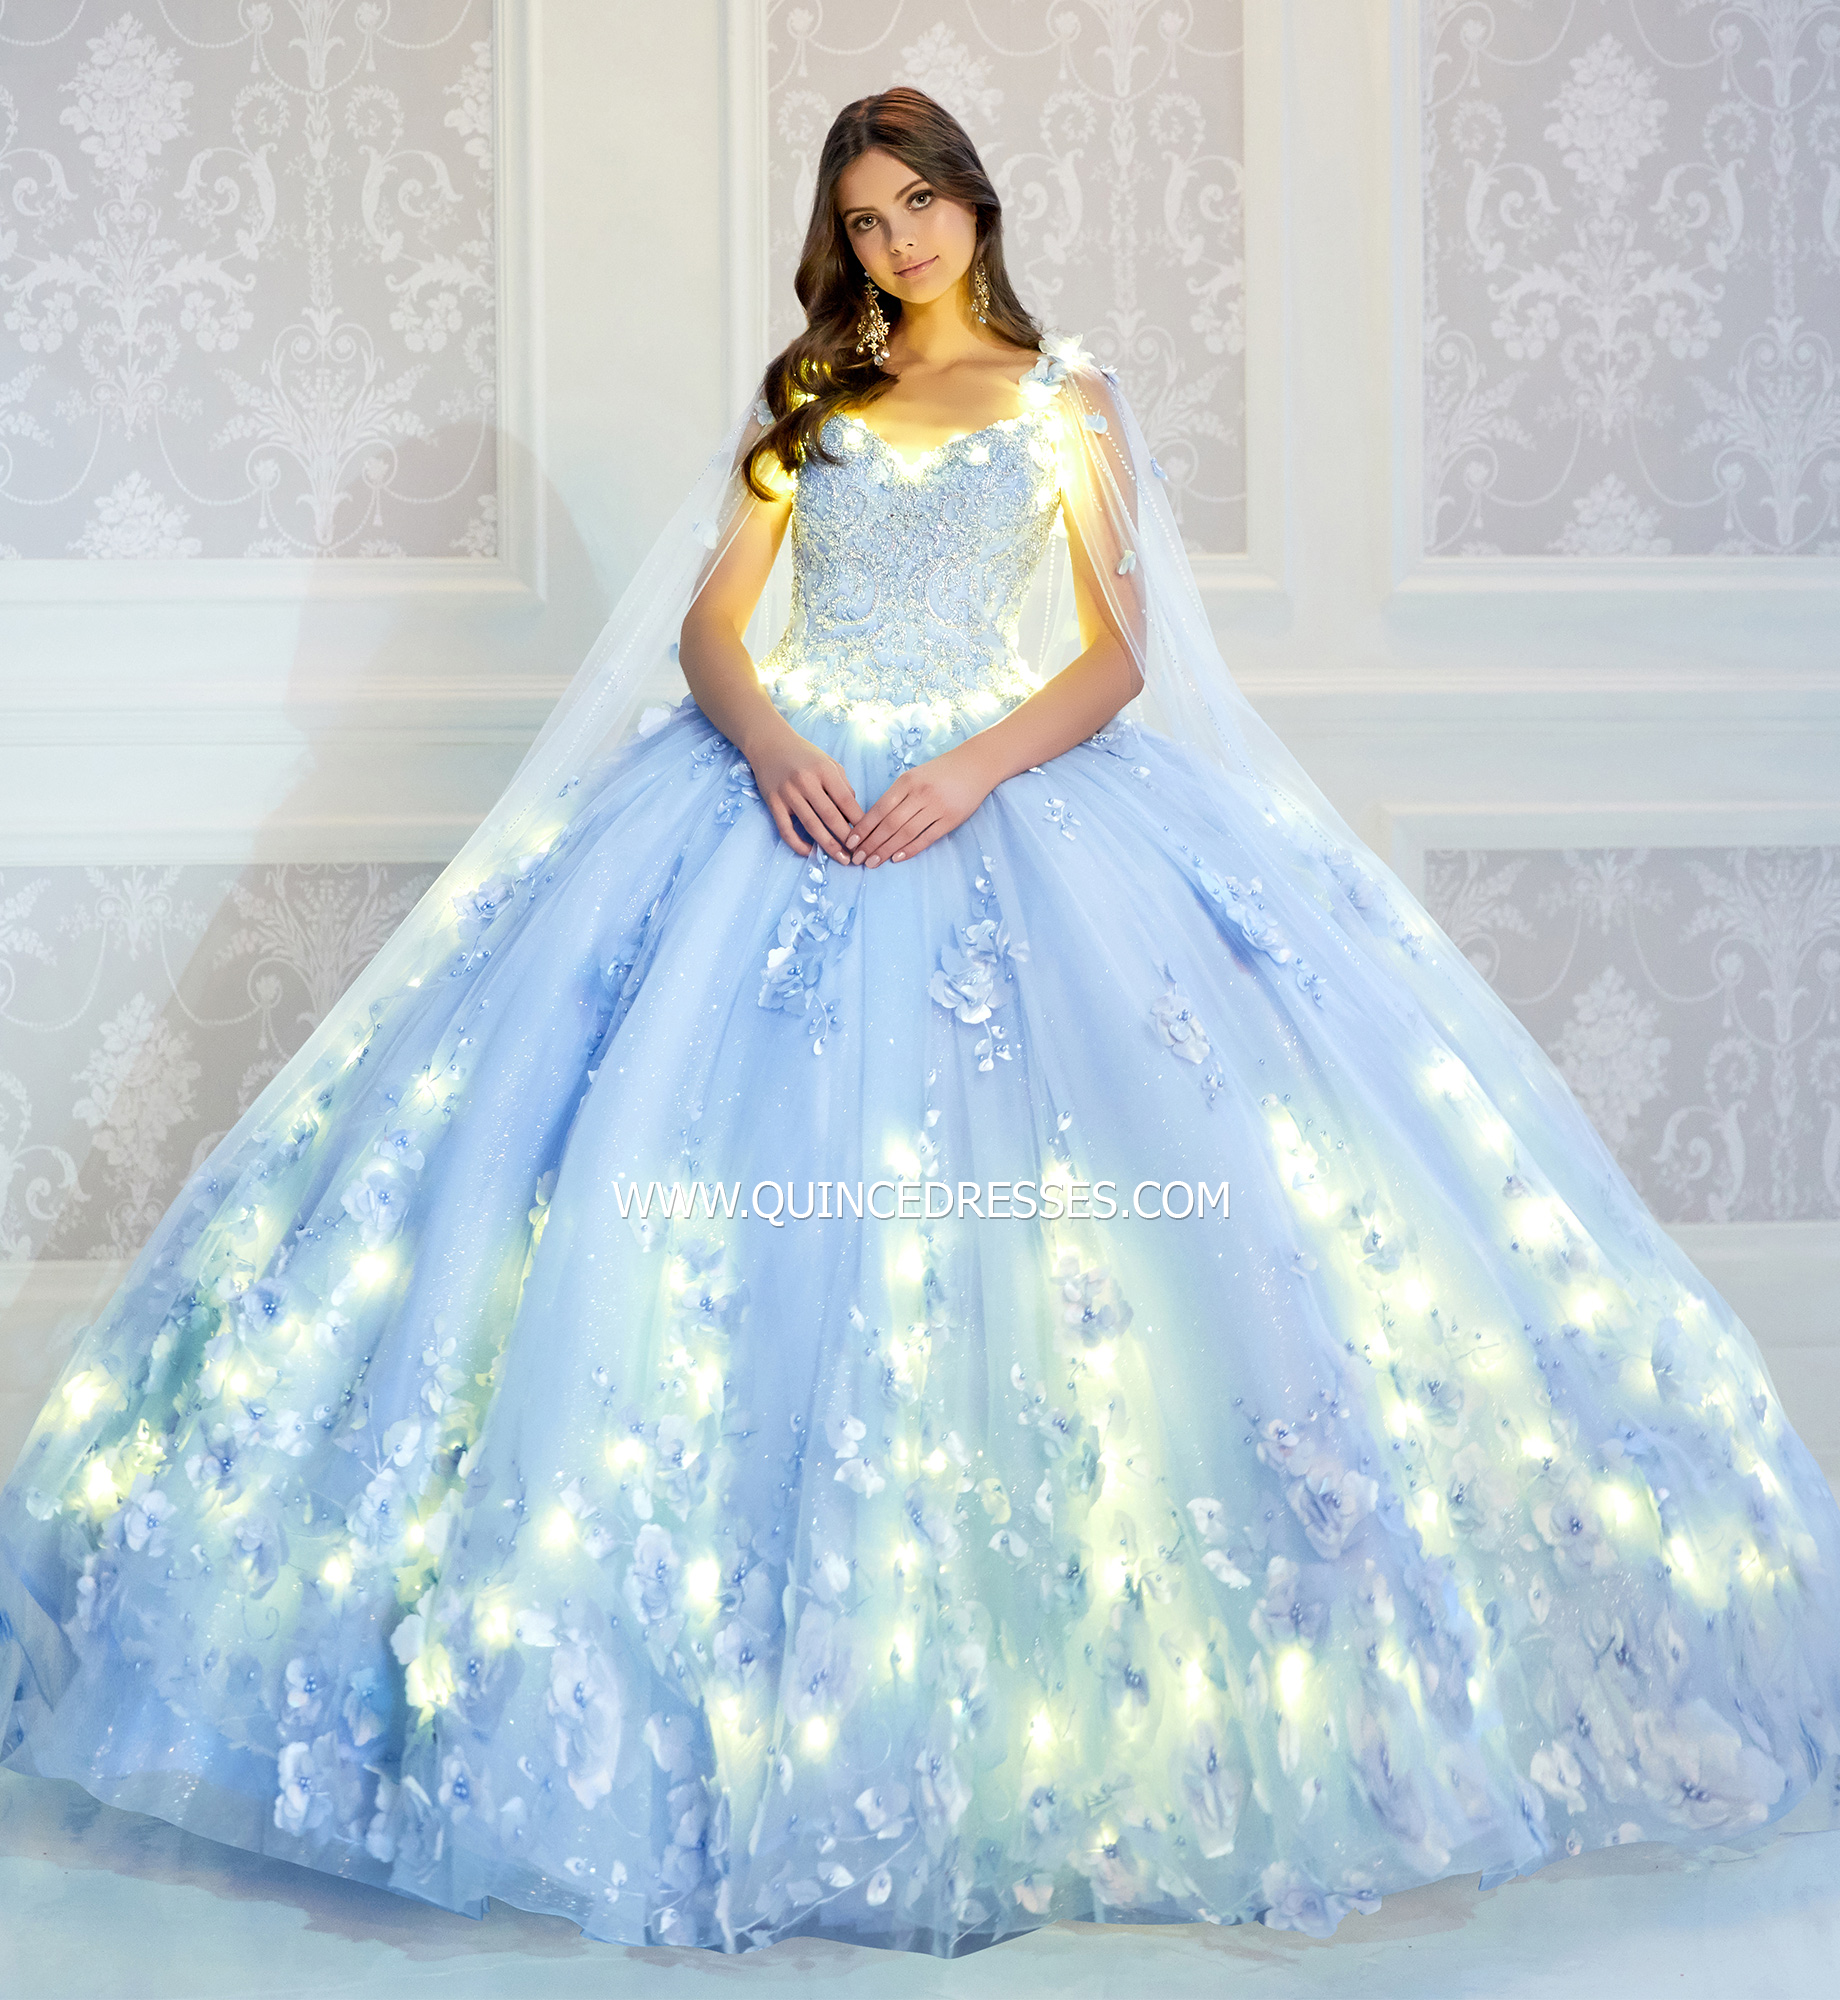 Off The Shoulder Lace Quinceanera Dress By Alta Couture Mq3001 Light Blue Quinceanera Dresses Pretty Quinceanera Dresses Quinceanera Dresses Blue [ 2400 x 1800 Pixel ]